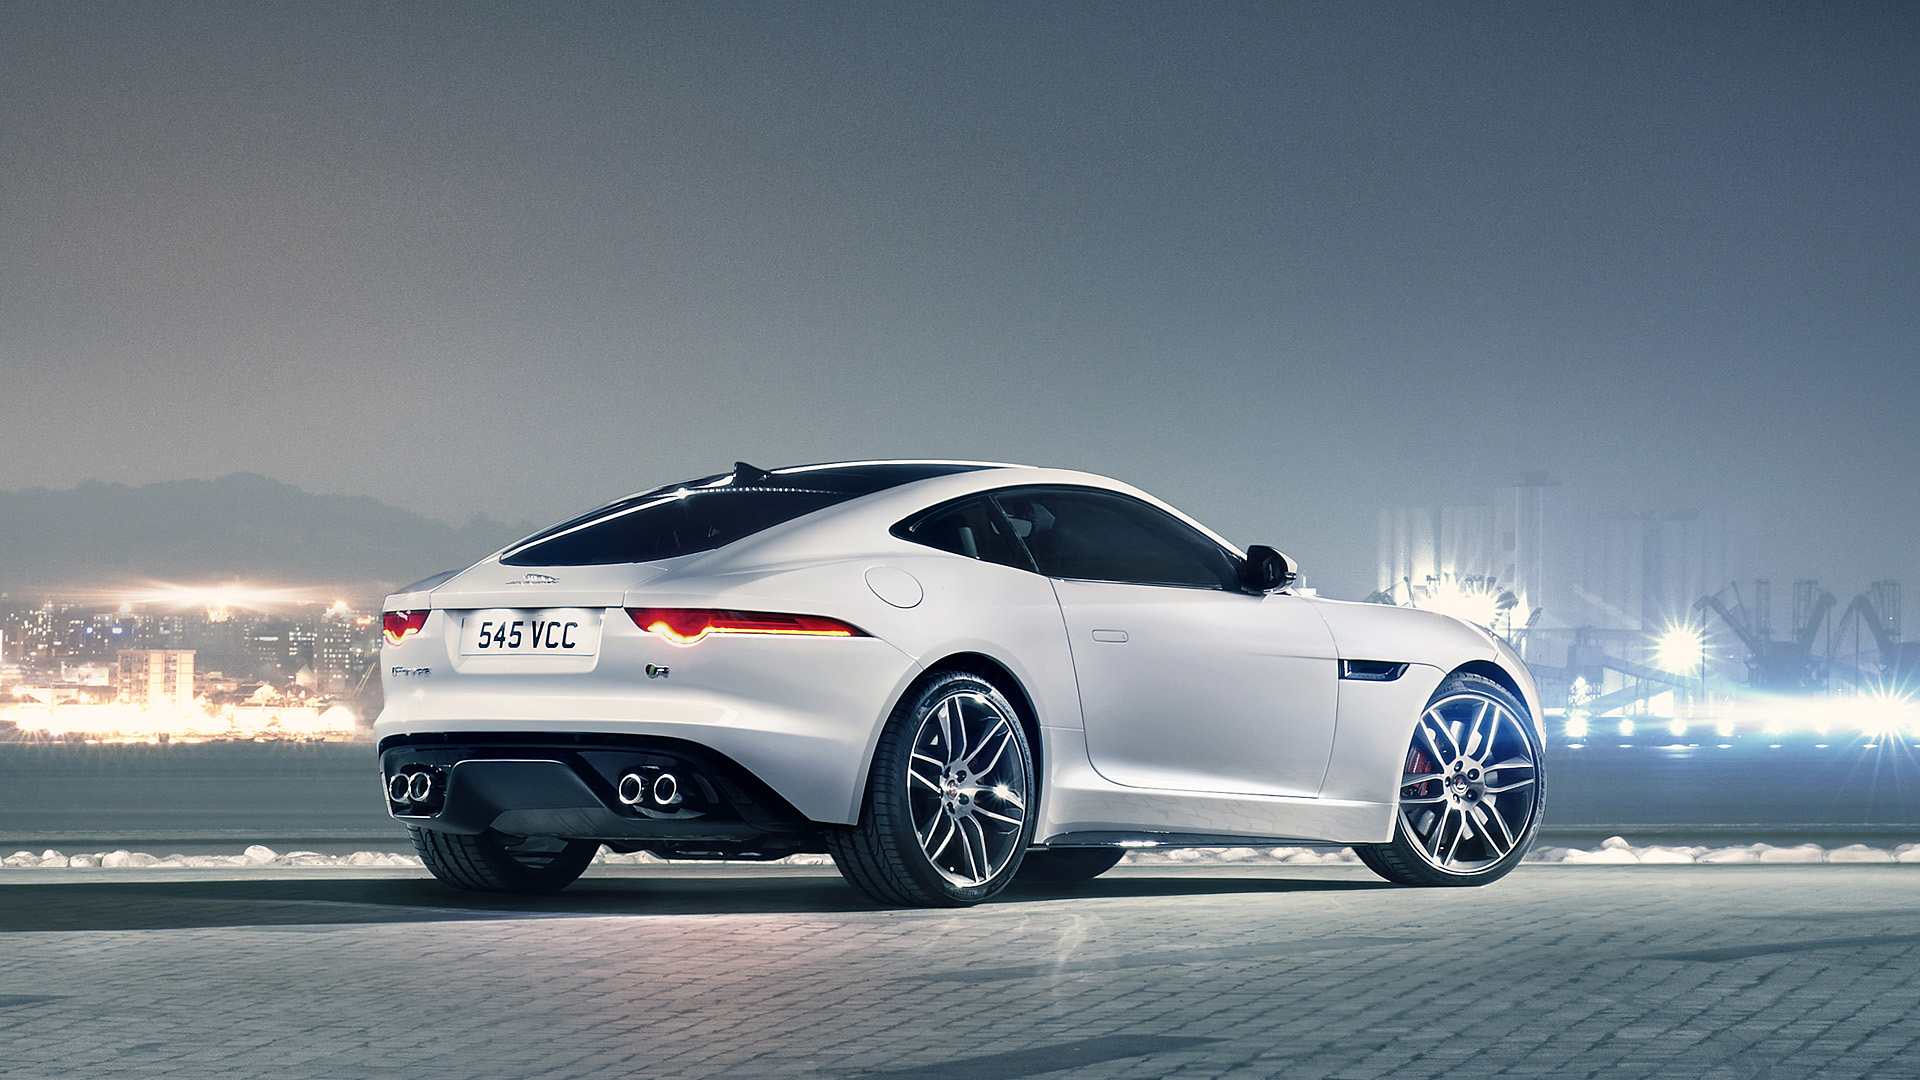 2015 Jaguar F Type R Coupe Wallpapers 1920x1080